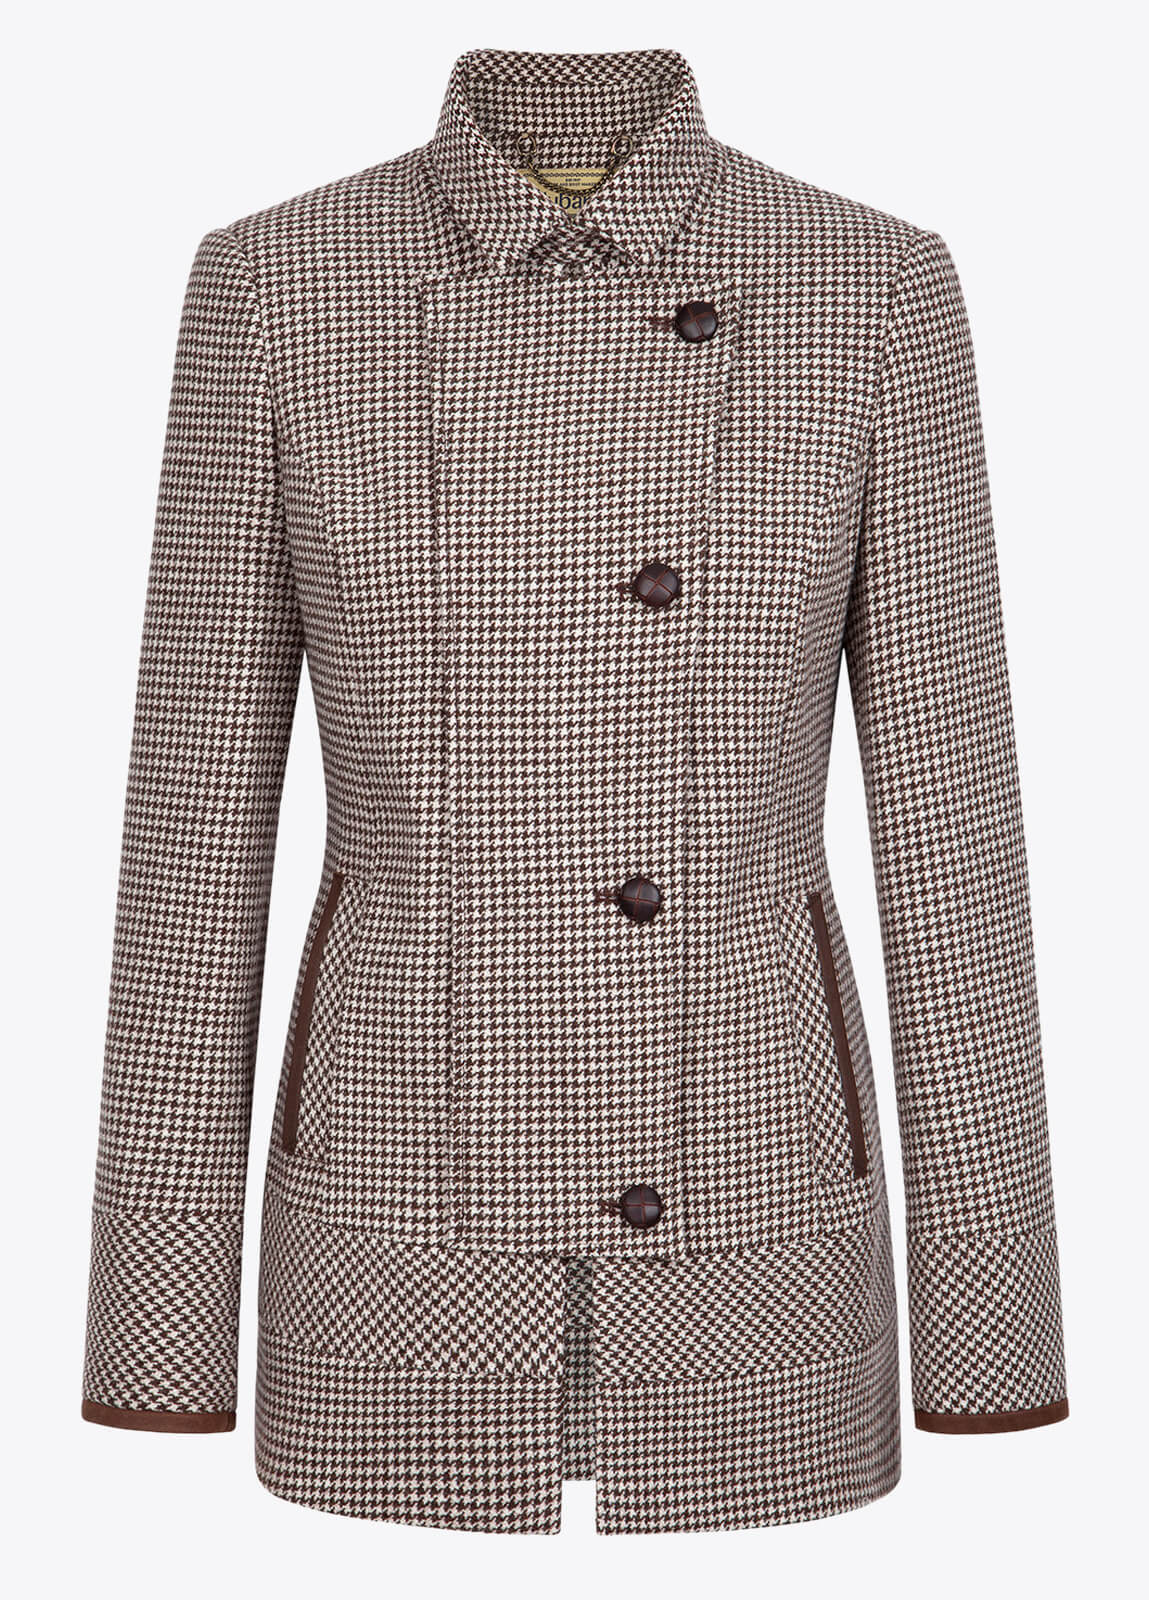 Willow Tweed Jacket - Cafe